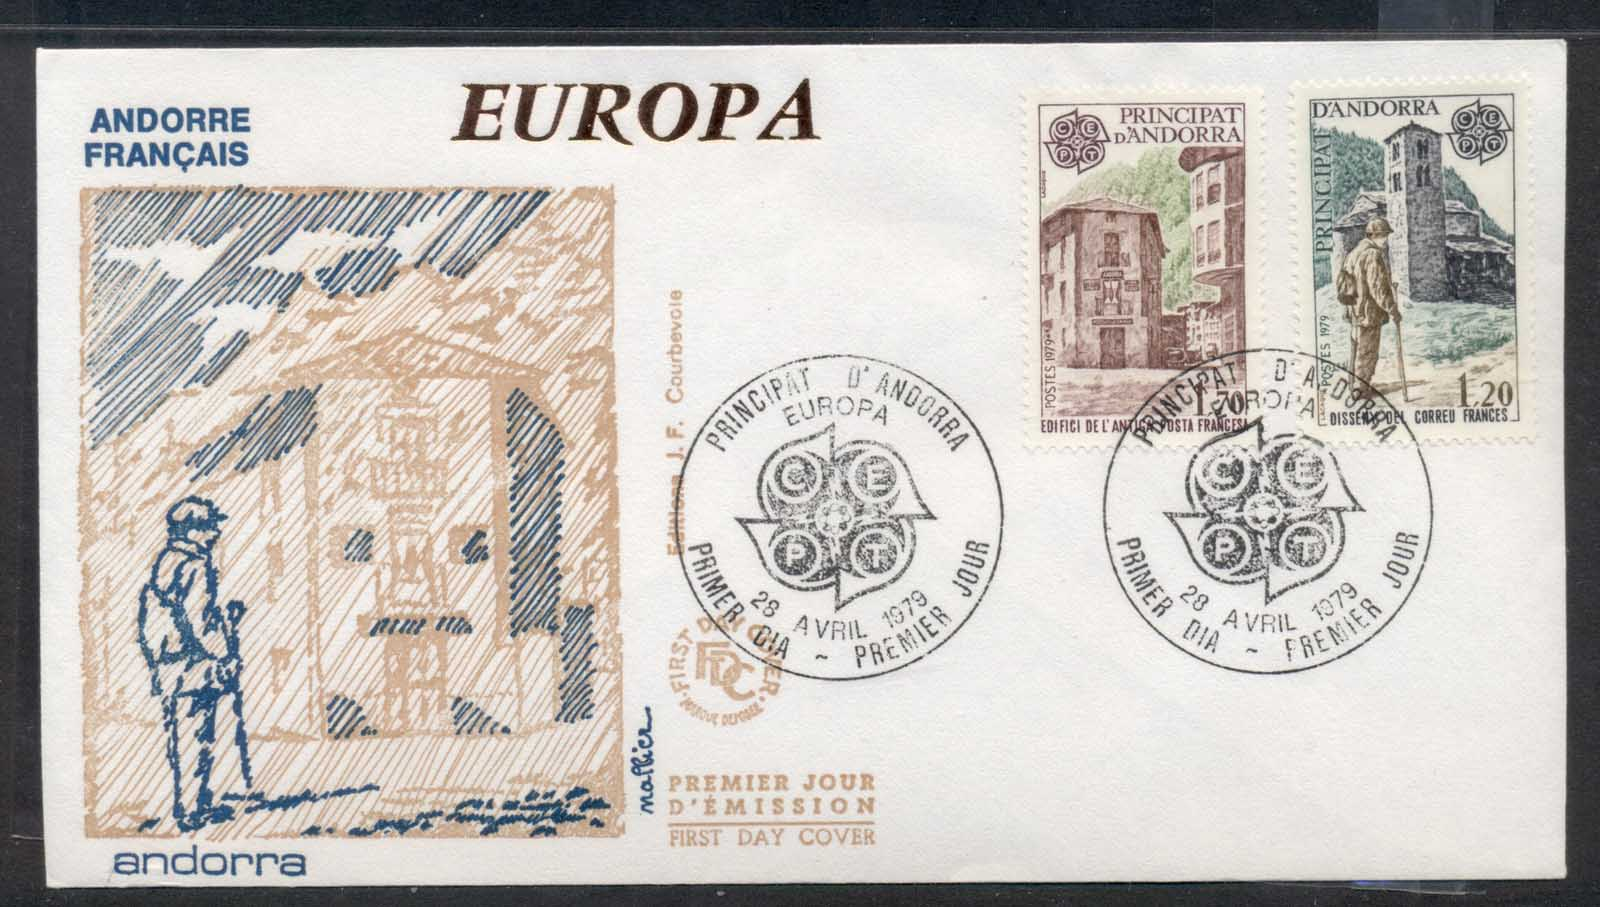 Andorra (Fr.) 1979 Europa Communications FDC